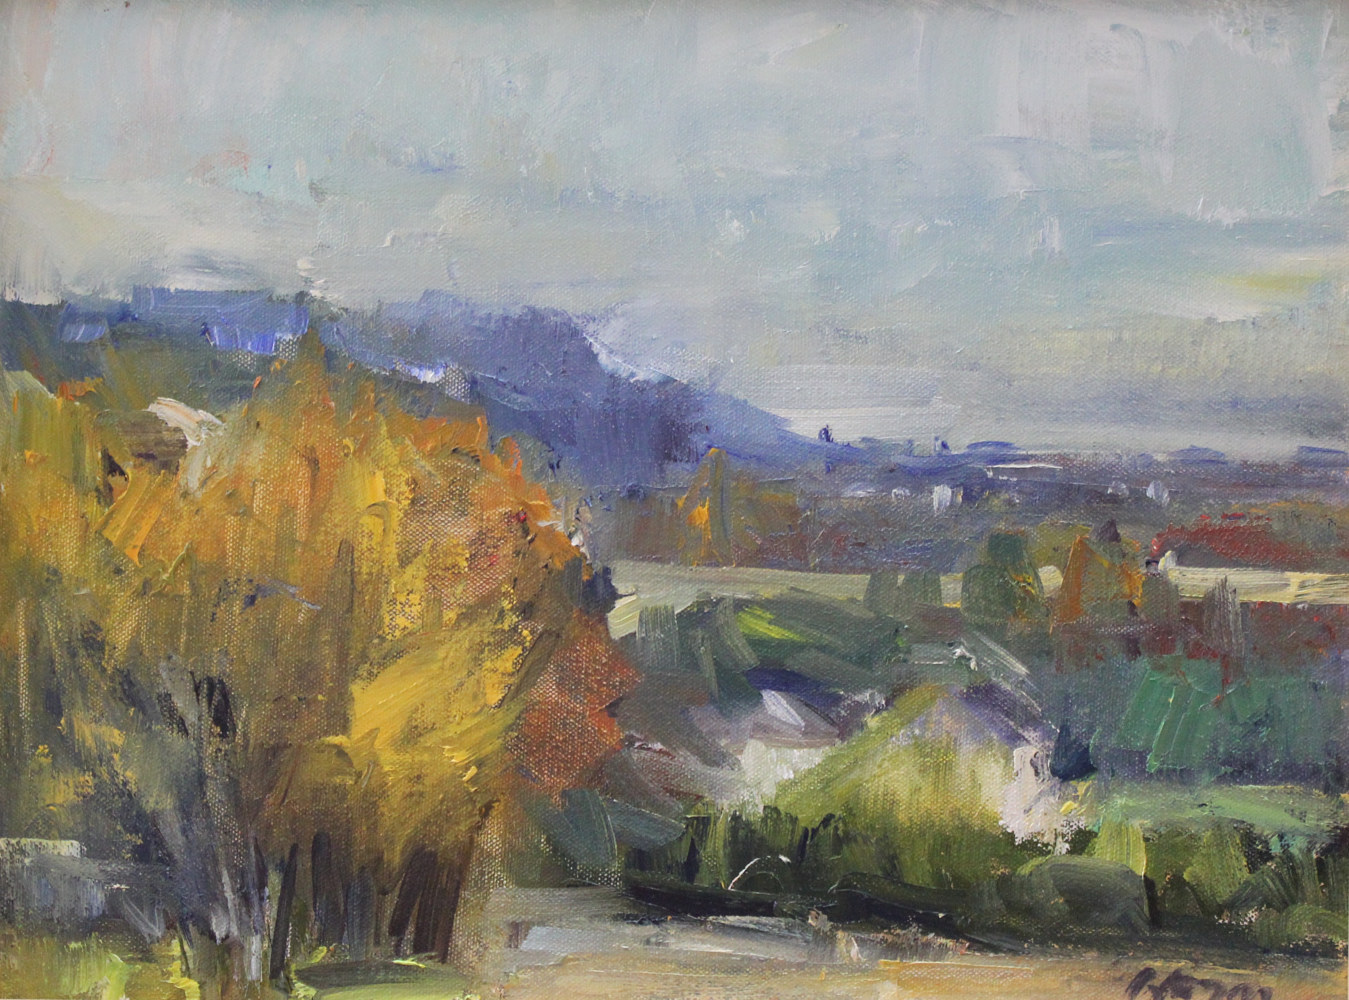 Painting View From Herman Farm, oil on board,   by Susan Horn